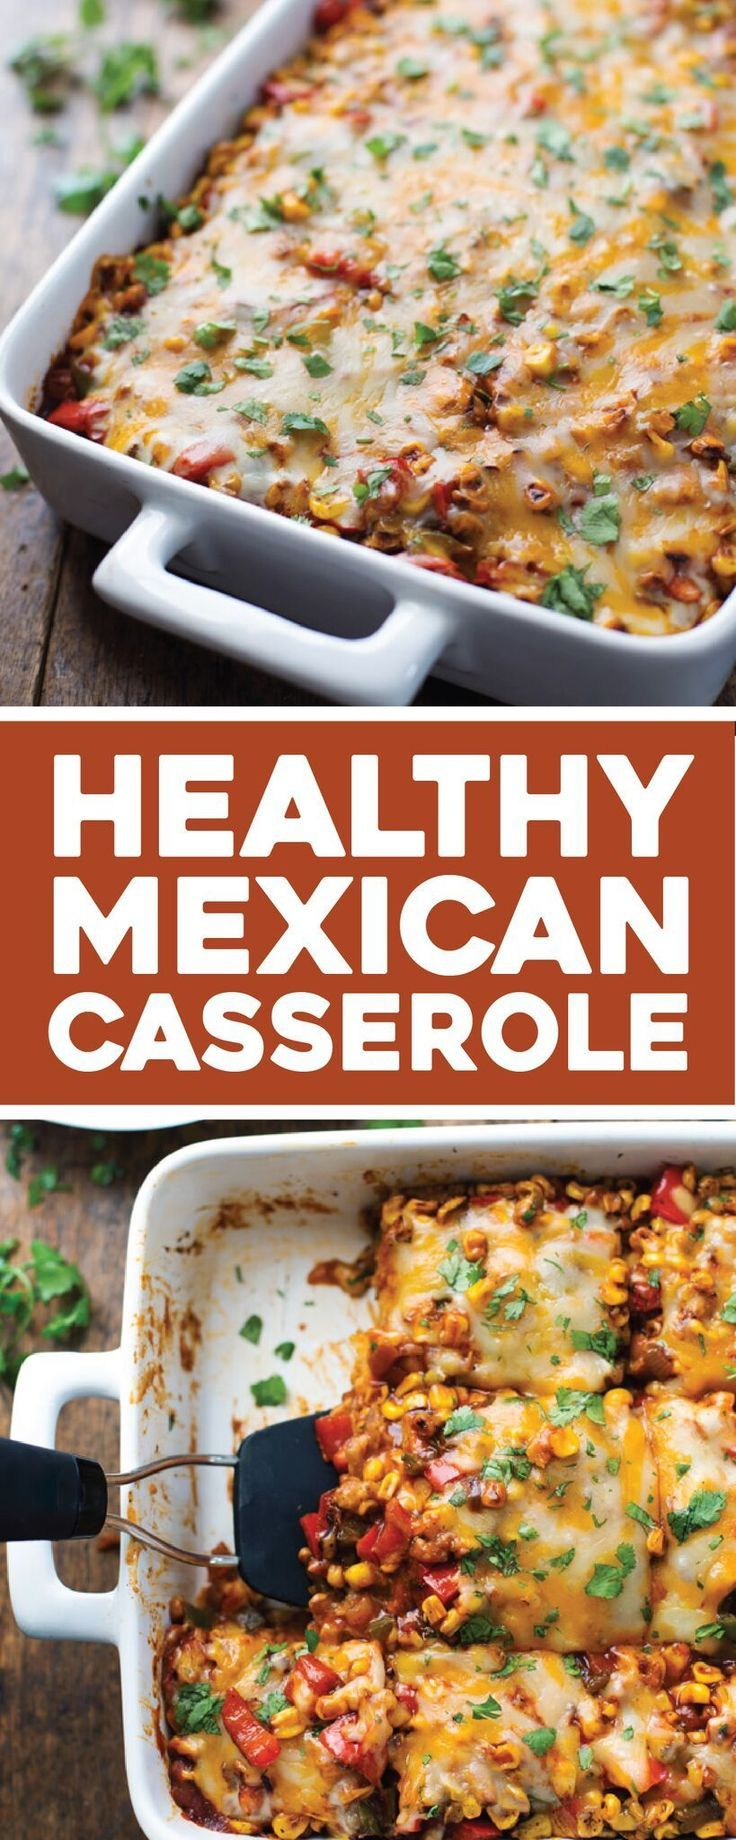 Photo of Healthy Mexican Casserole with Roasted Corn and Peppers